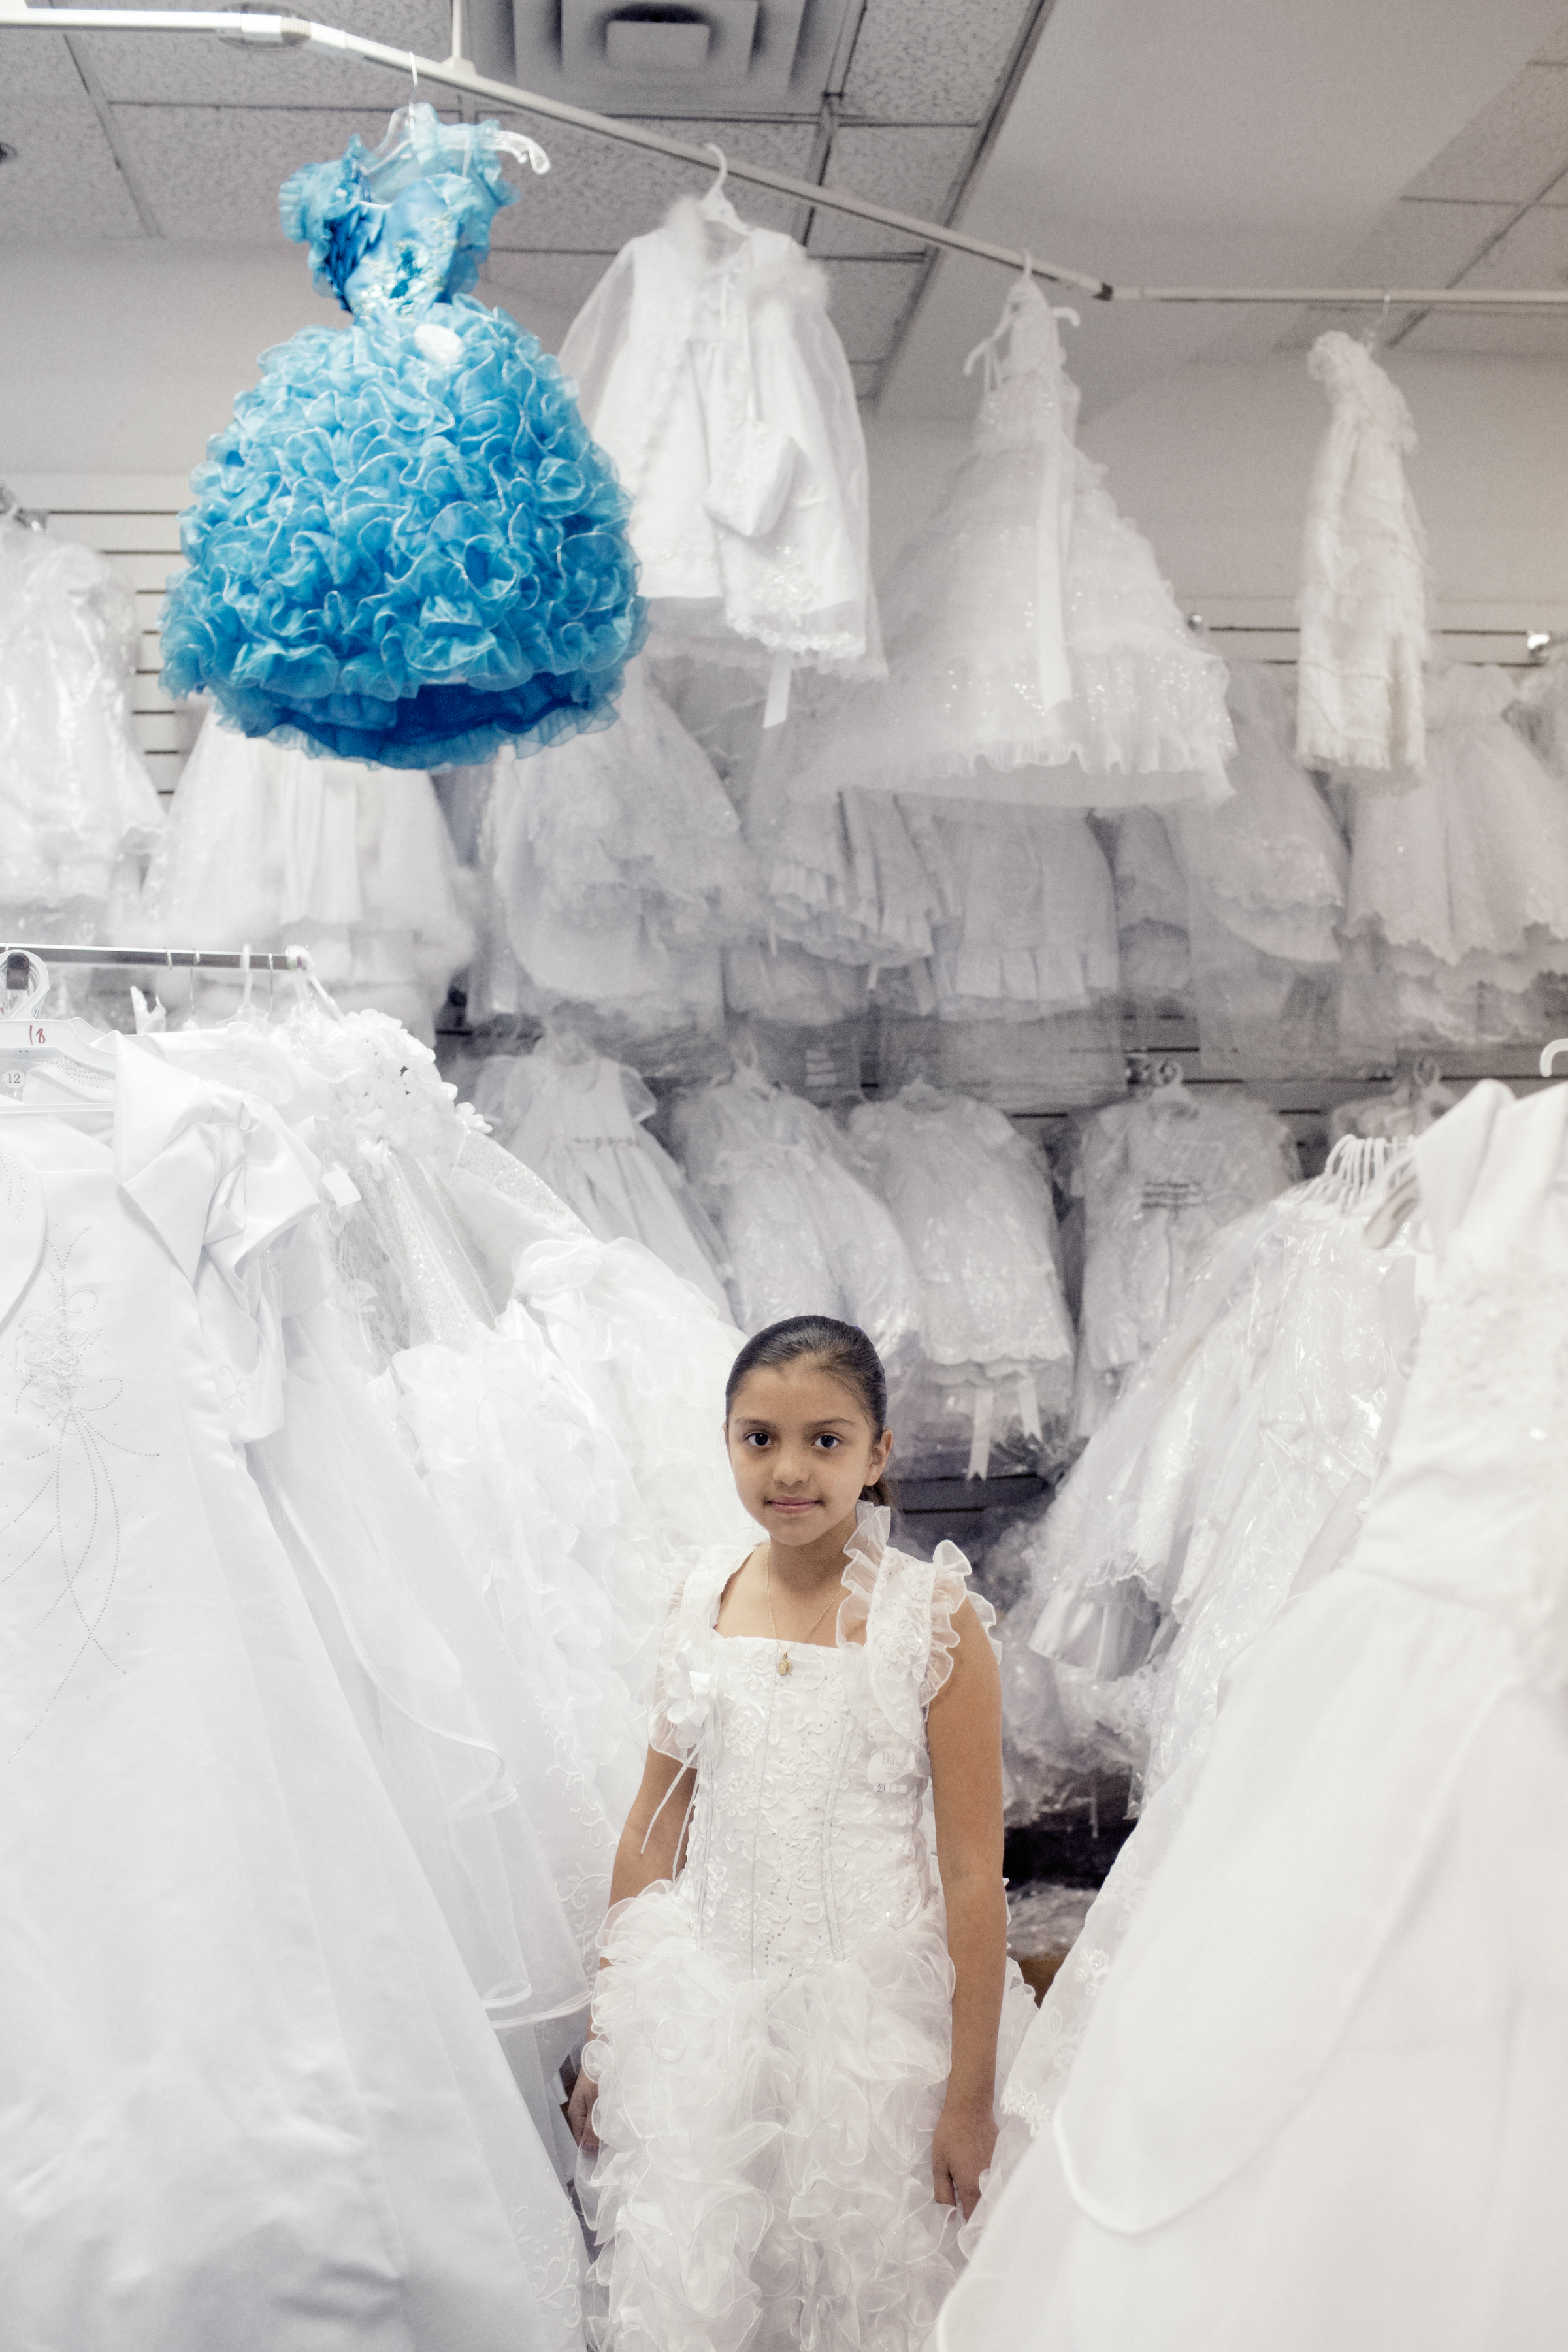 A portrait of Samantha Lujan, 10, trying on dresses for her First Communion at La Gran Plaza. Samantha's family are originally from Durango, Mexico. They moved to California and now live in Fort Worth.